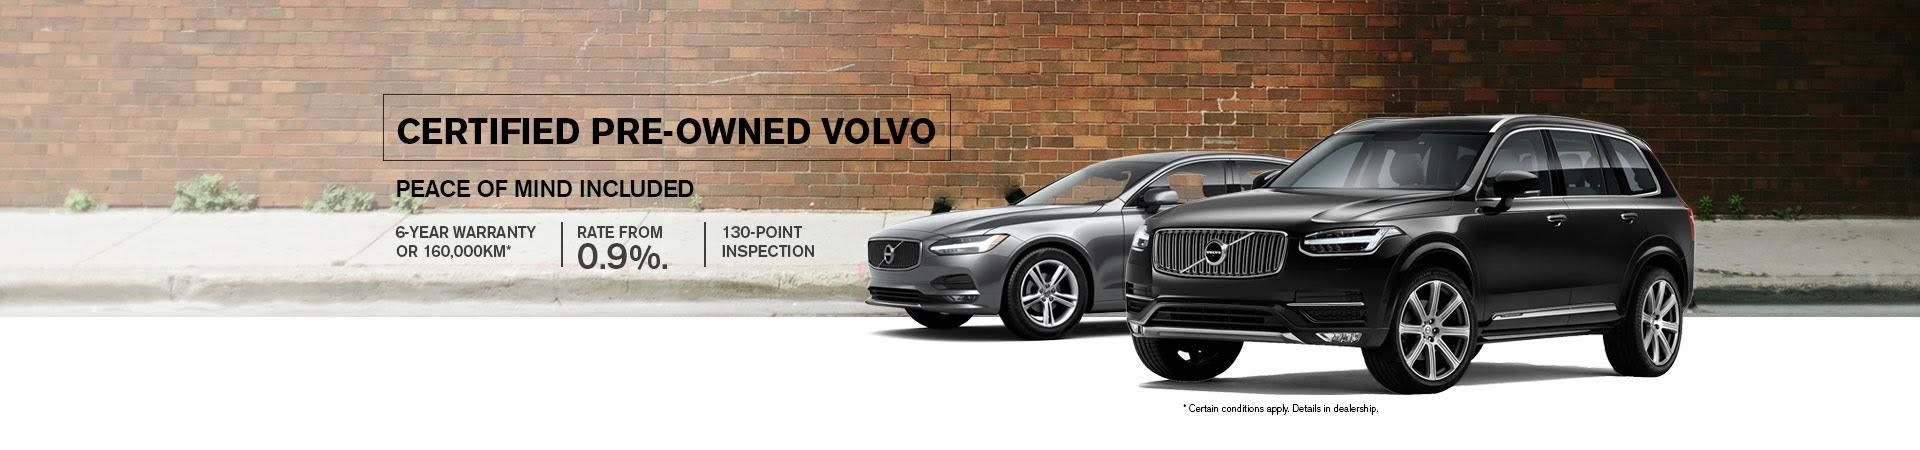 Volvo Certified Pre Owned >> Pre Owned Vehicles In Inventory For Sale In Laval Volvo Laval